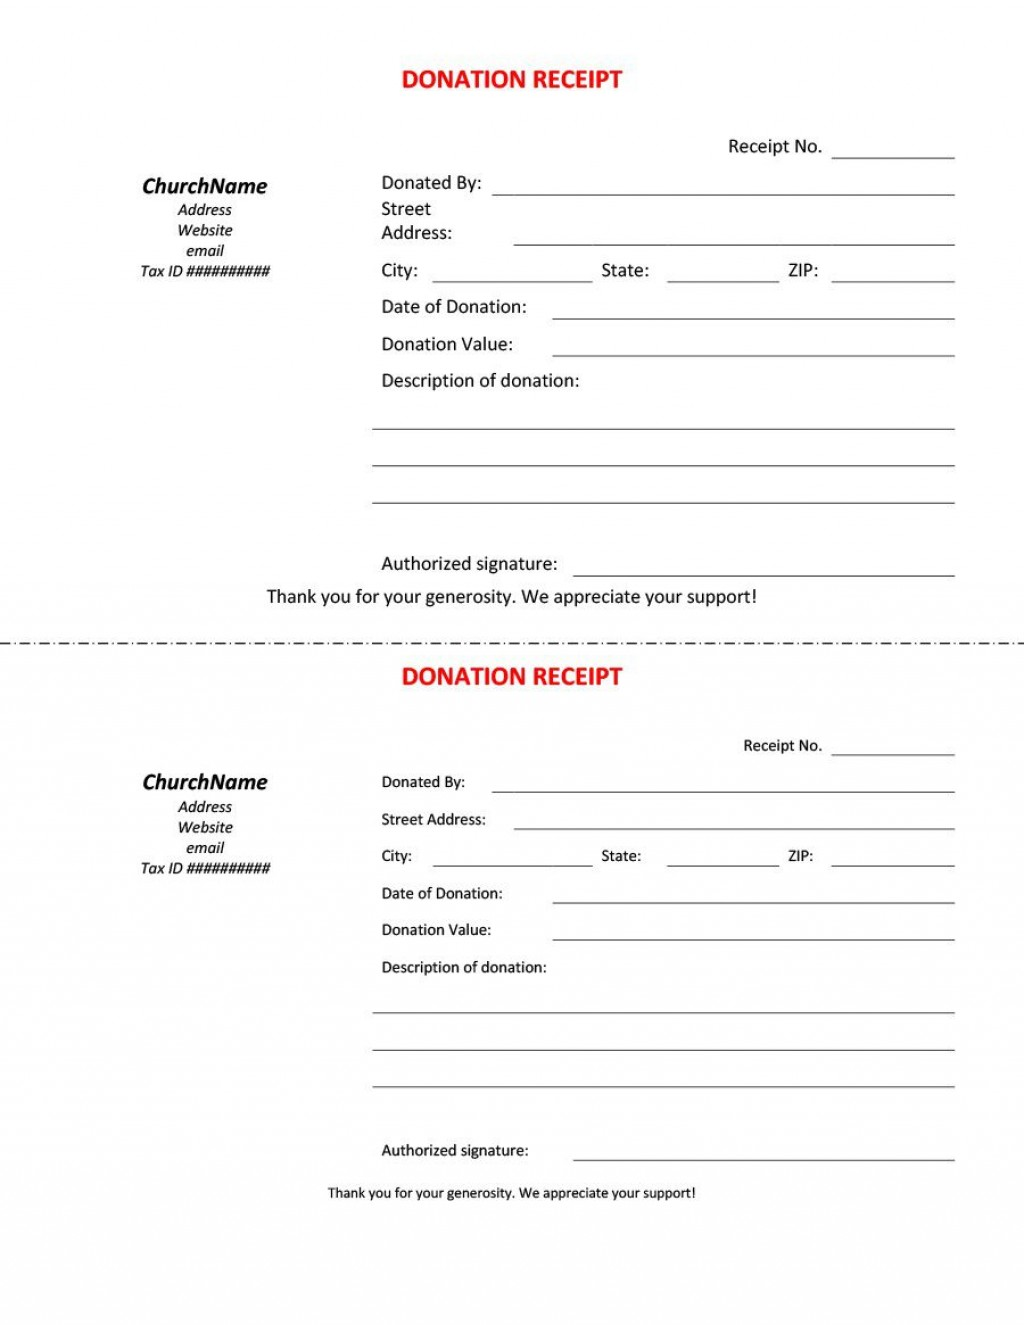 007 Unique Church Tax Donation Receipt Template Highest Clarity Large